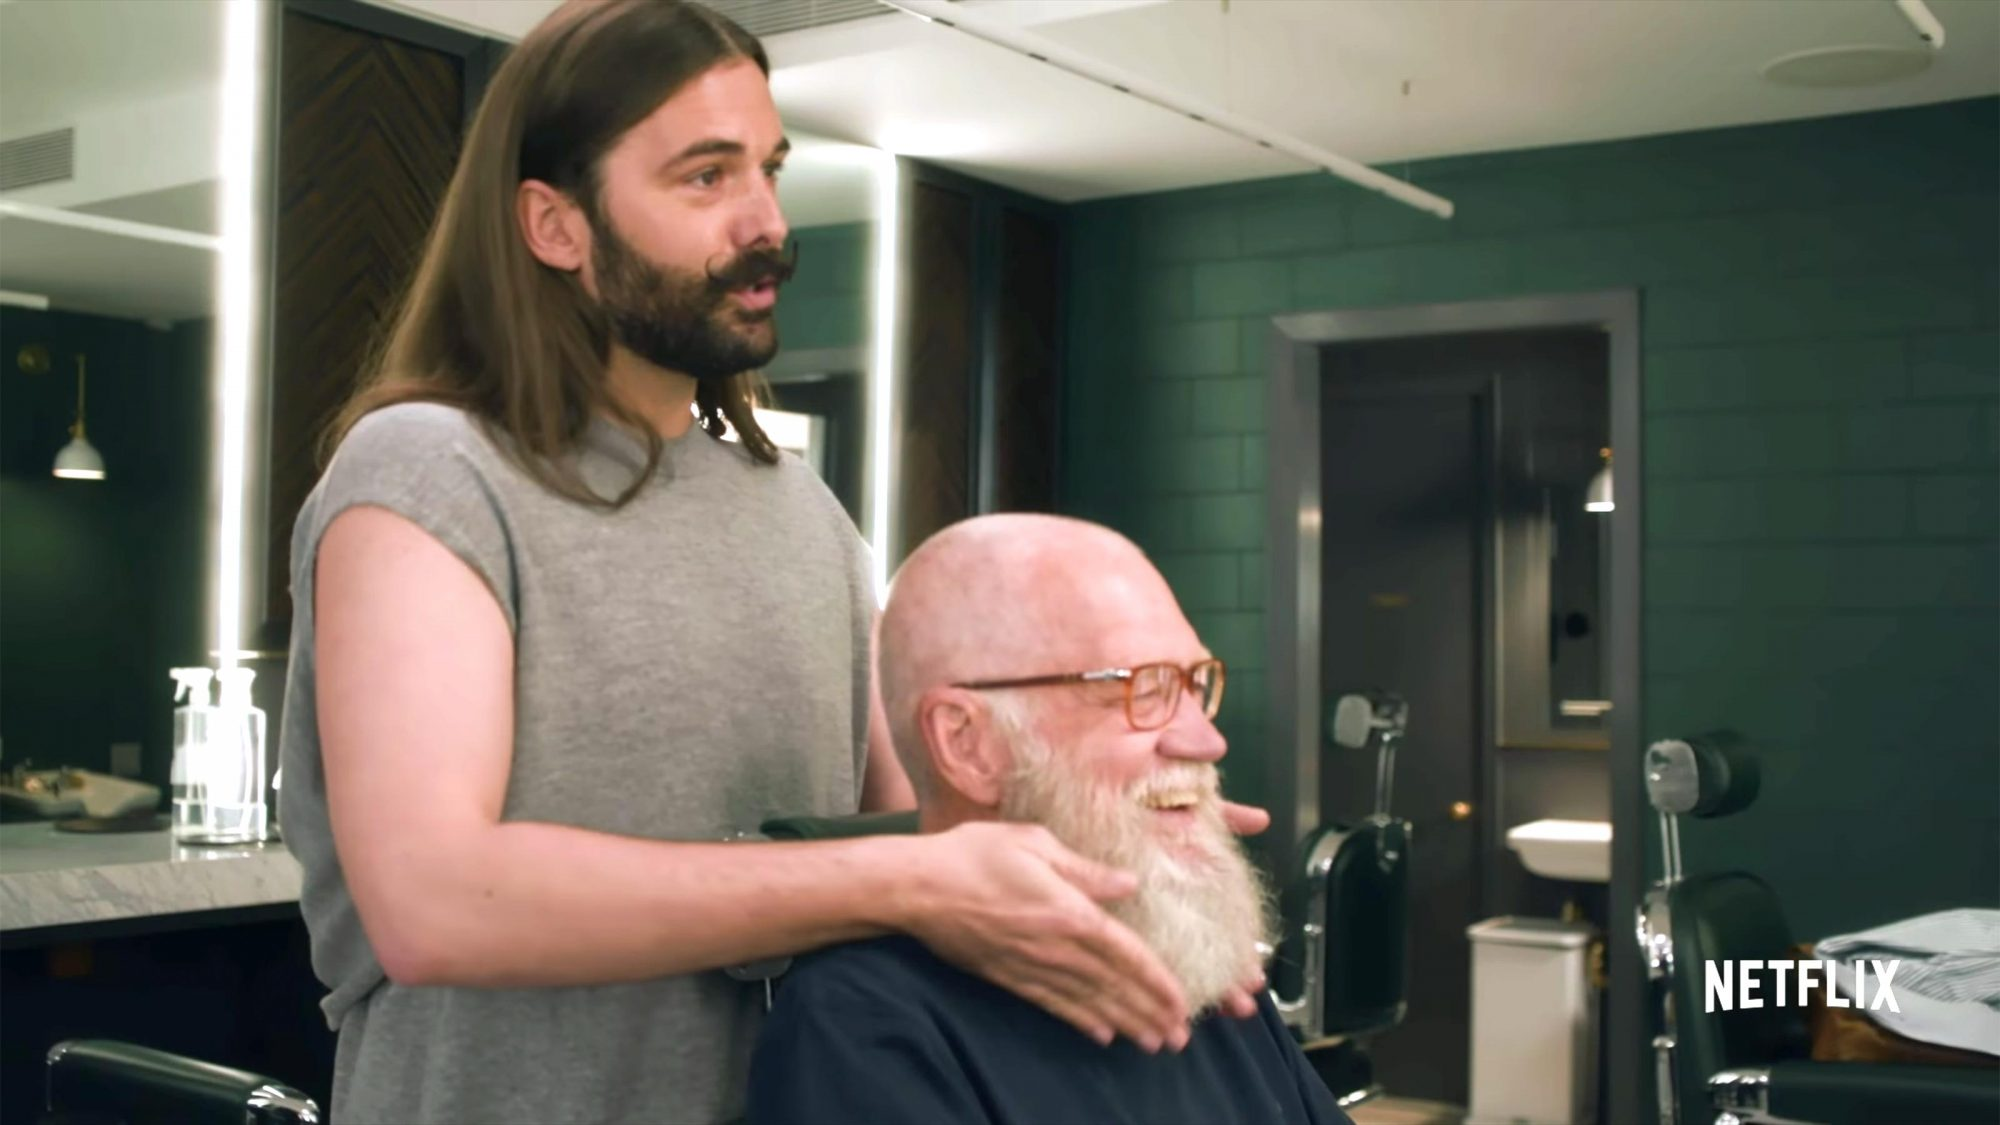 David Letterman and Jonathan Van Ness on Beard Trims, Self Care, Gender and LGBTQ Rights | Netflix (screen grab) https://www.youtube.com/watch?v=v_dHWI4CzUU CR: Netflix